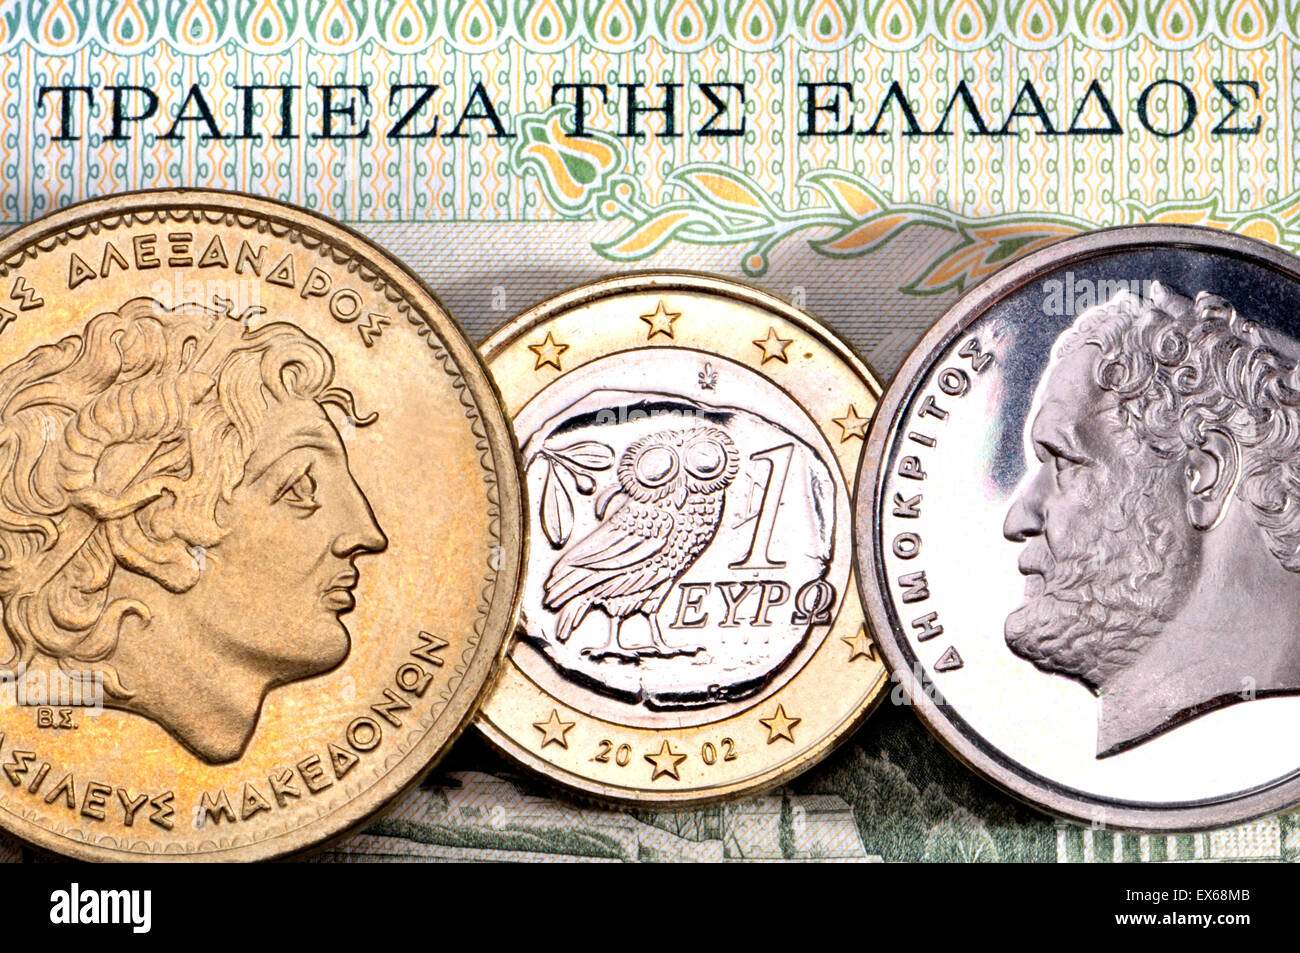 Greek currency - drachmas and Euro. Alexander the Great (100 drachmas) and Demokritus (10 drachmas) and 1 Euro coin. - Stock Image